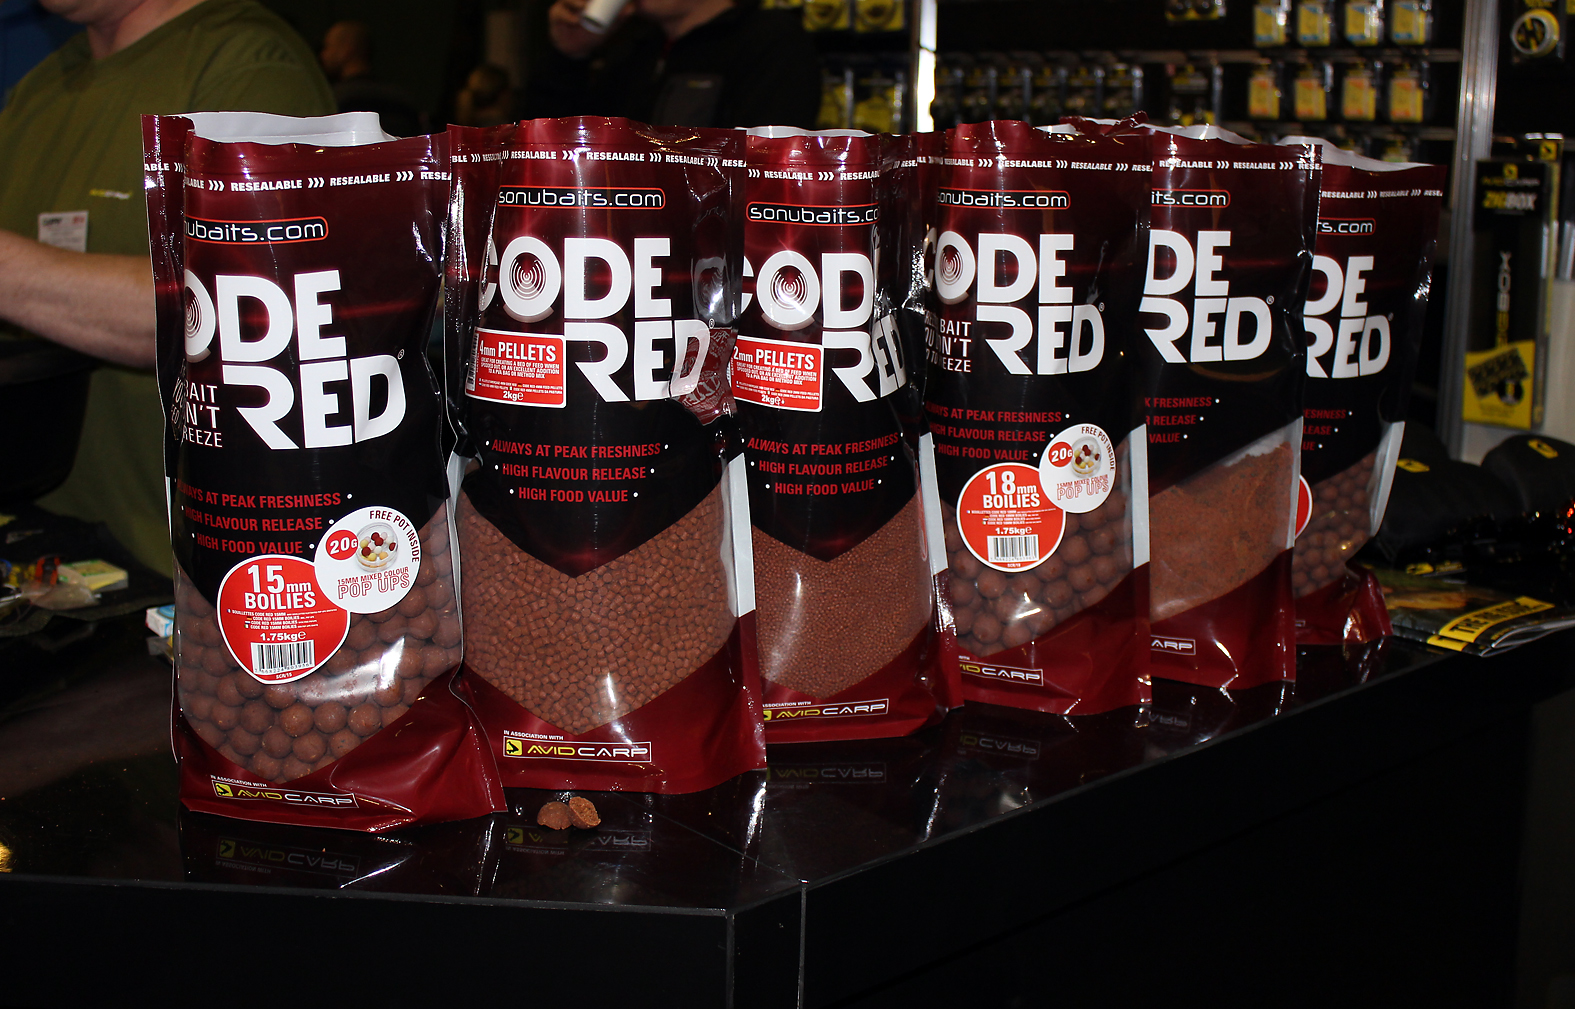 Sonubaits latest bait release, Code Red, the range includes boilies, pellets and groundbait